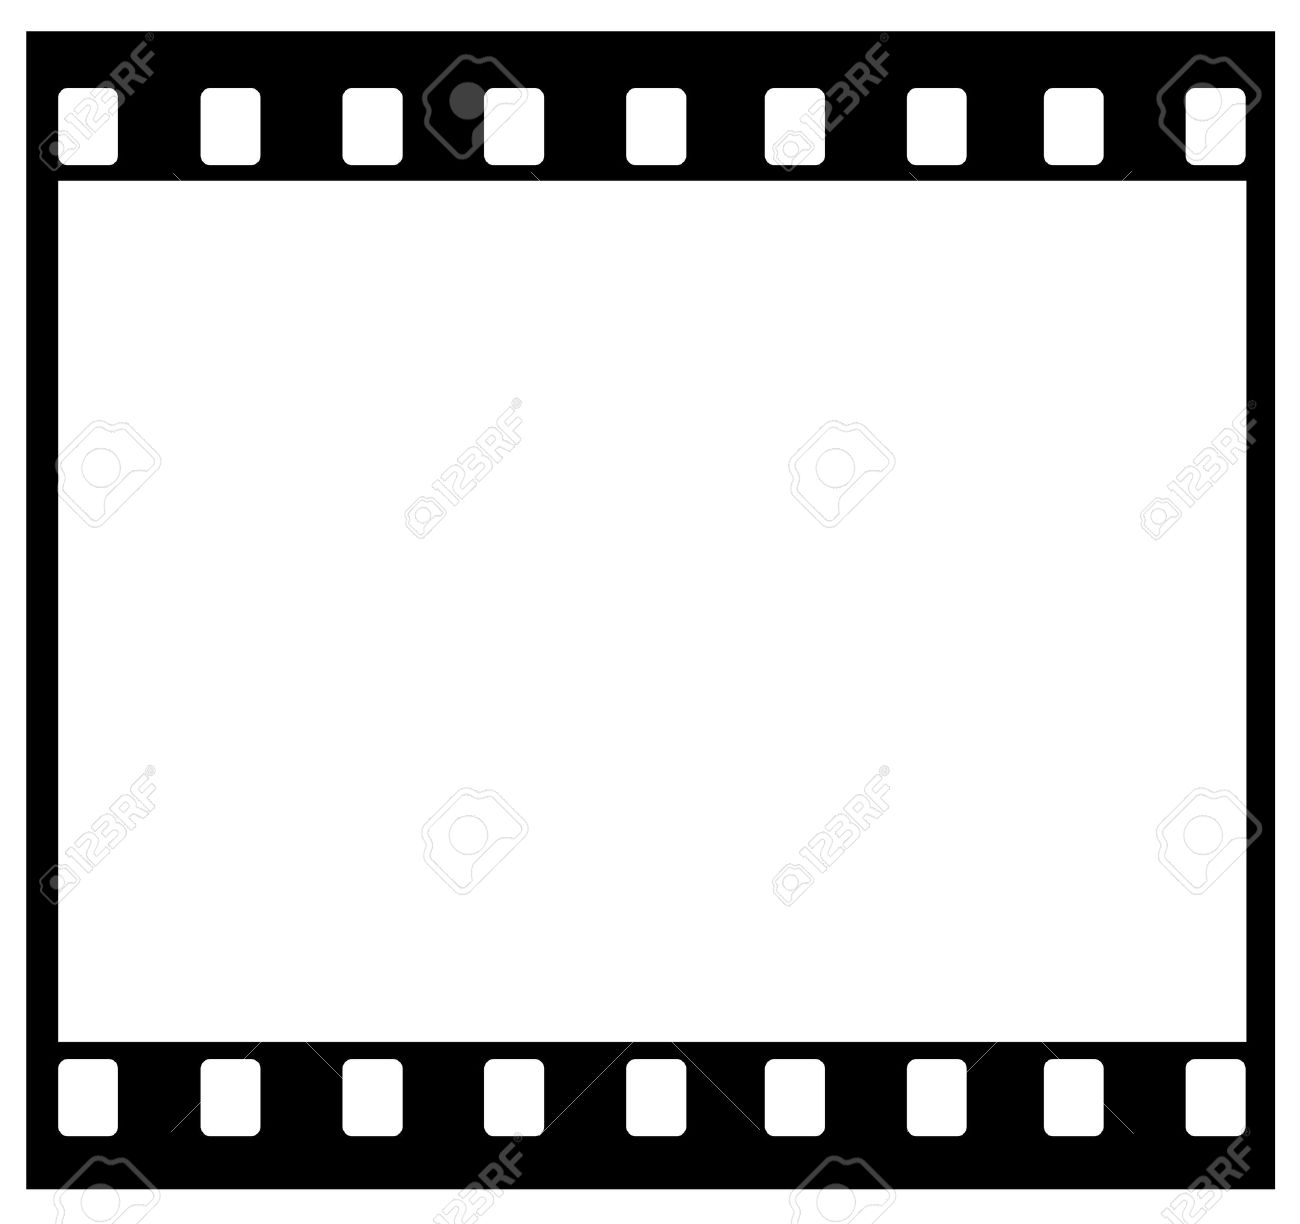 1300x1224 Film Strip Stock Photo, Picture And Royalty Free Image. Image 6597600.